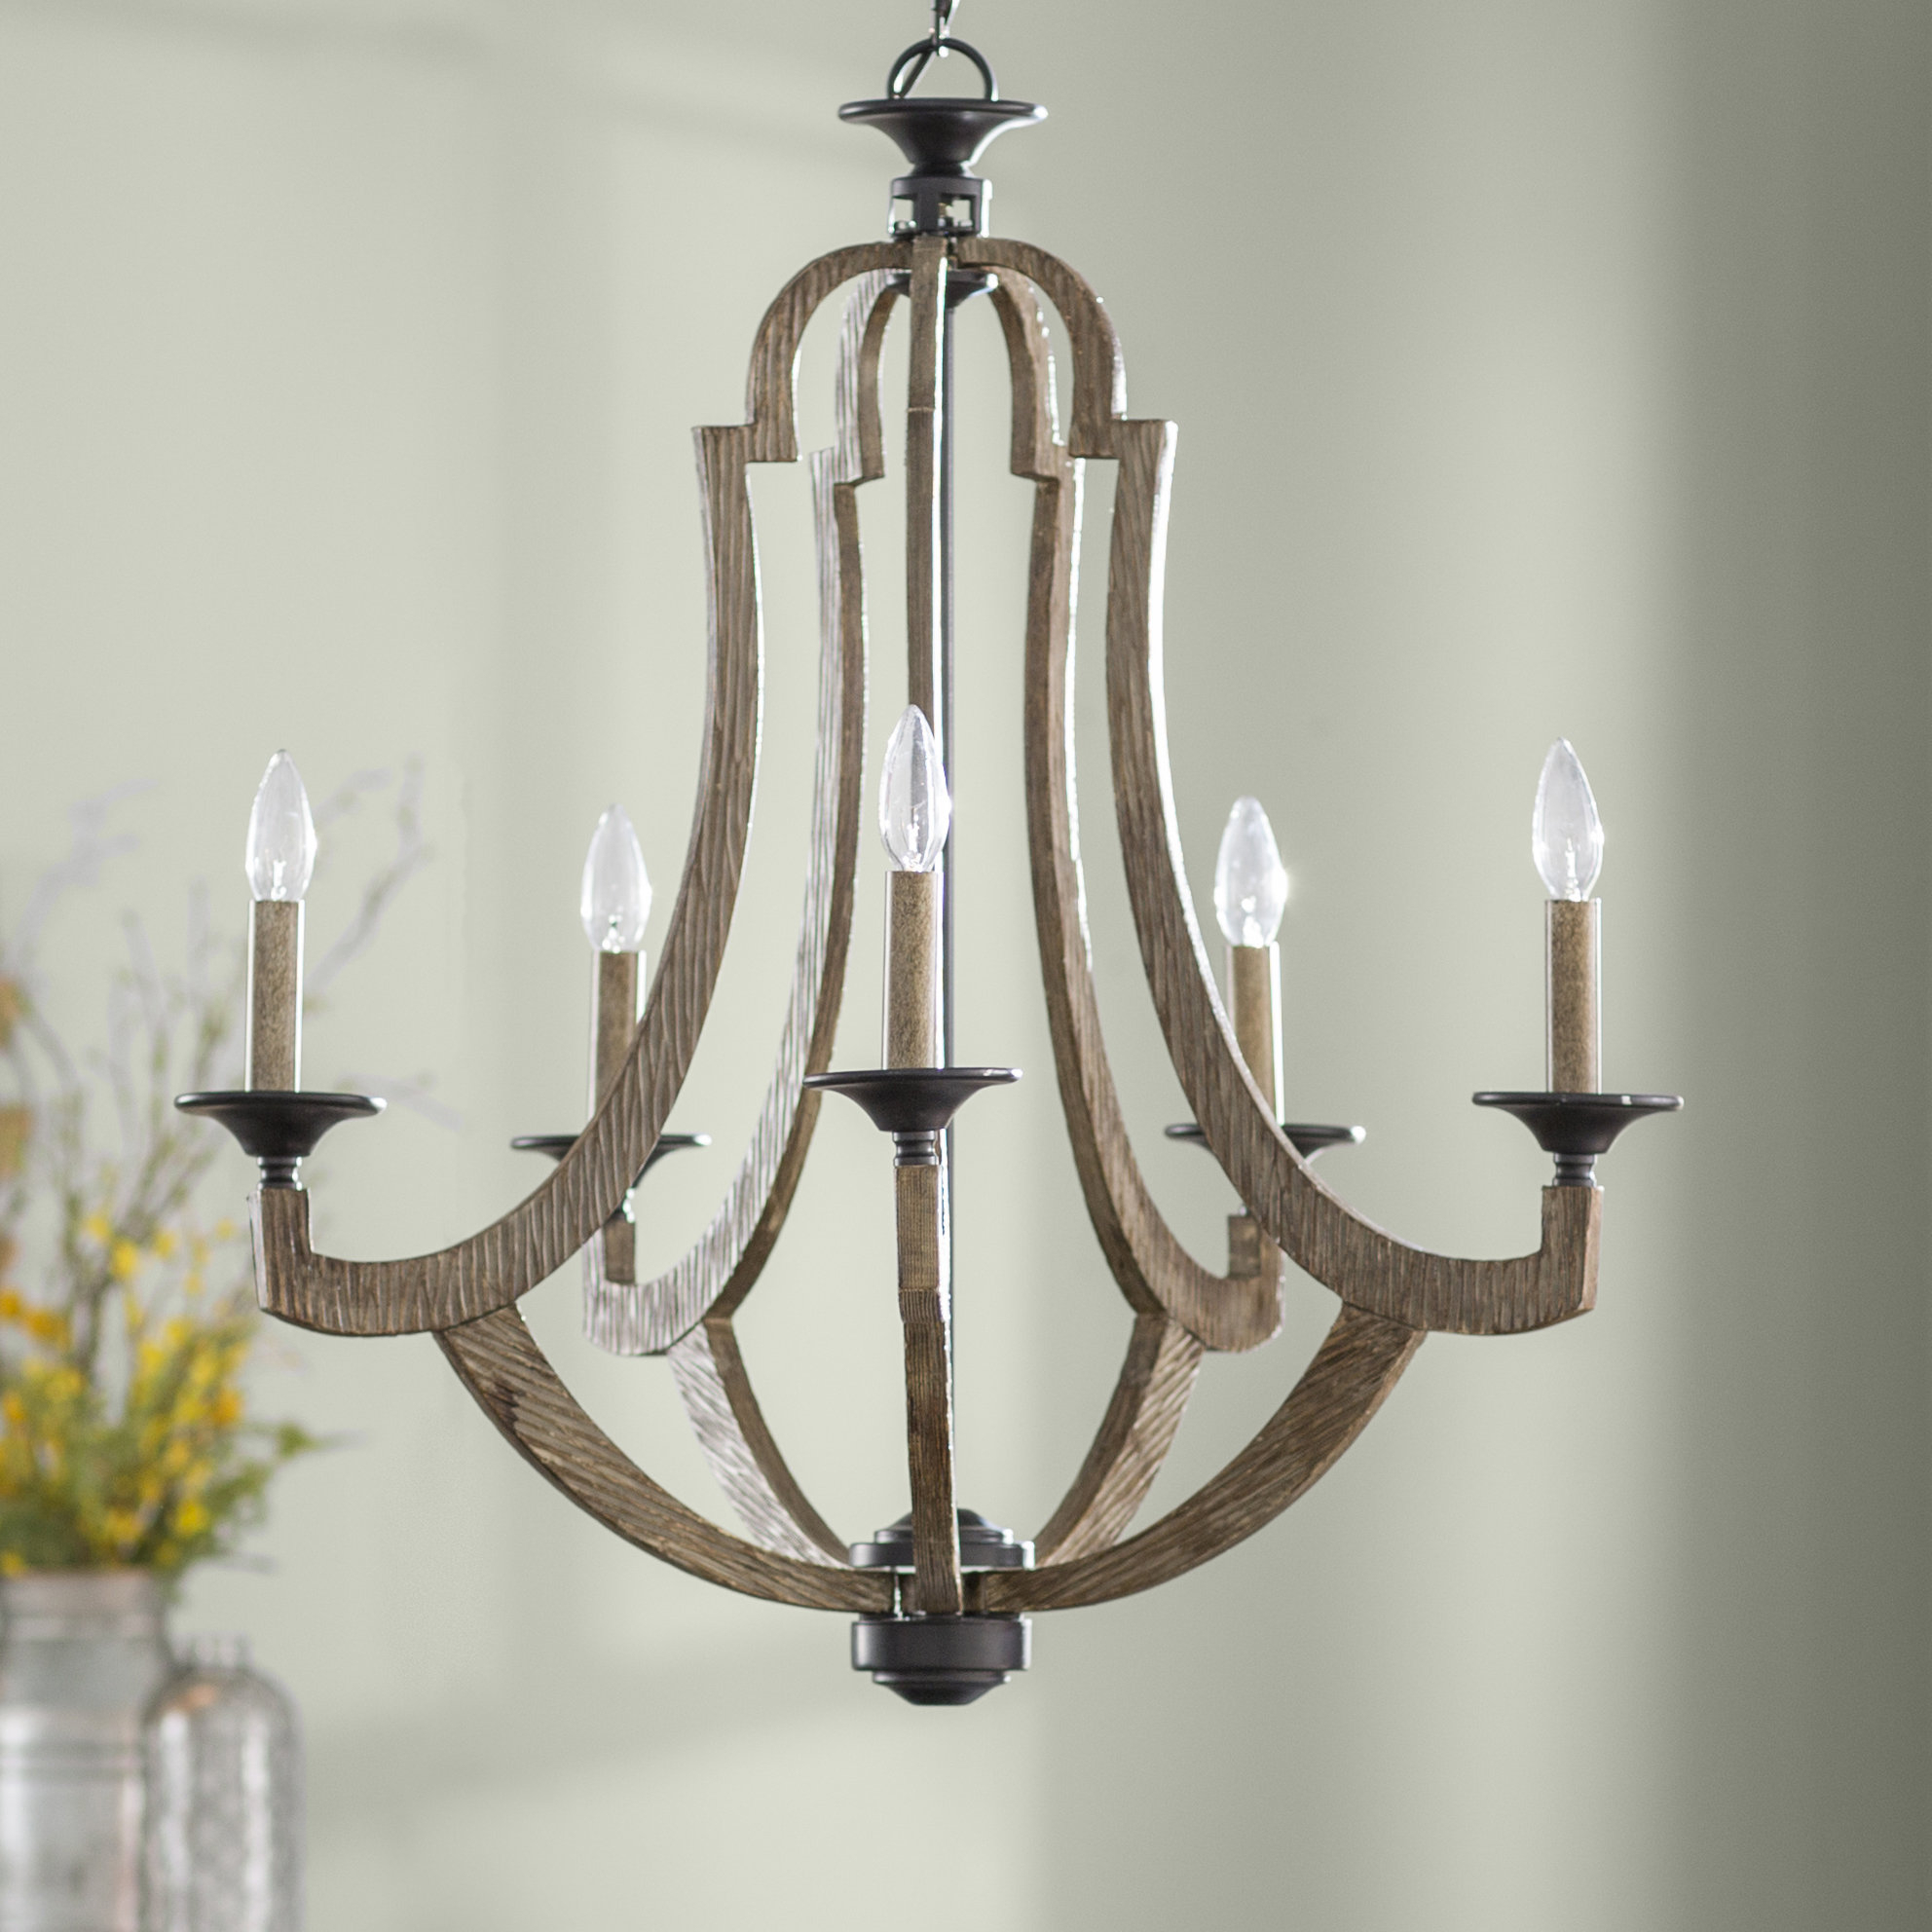 Well Liked Laurel Foundry Modern Farmhouse Marcoux 5 Light Empire Chandelier For Kenna 5 Light Empire Chandeliers (View 19 of 20)